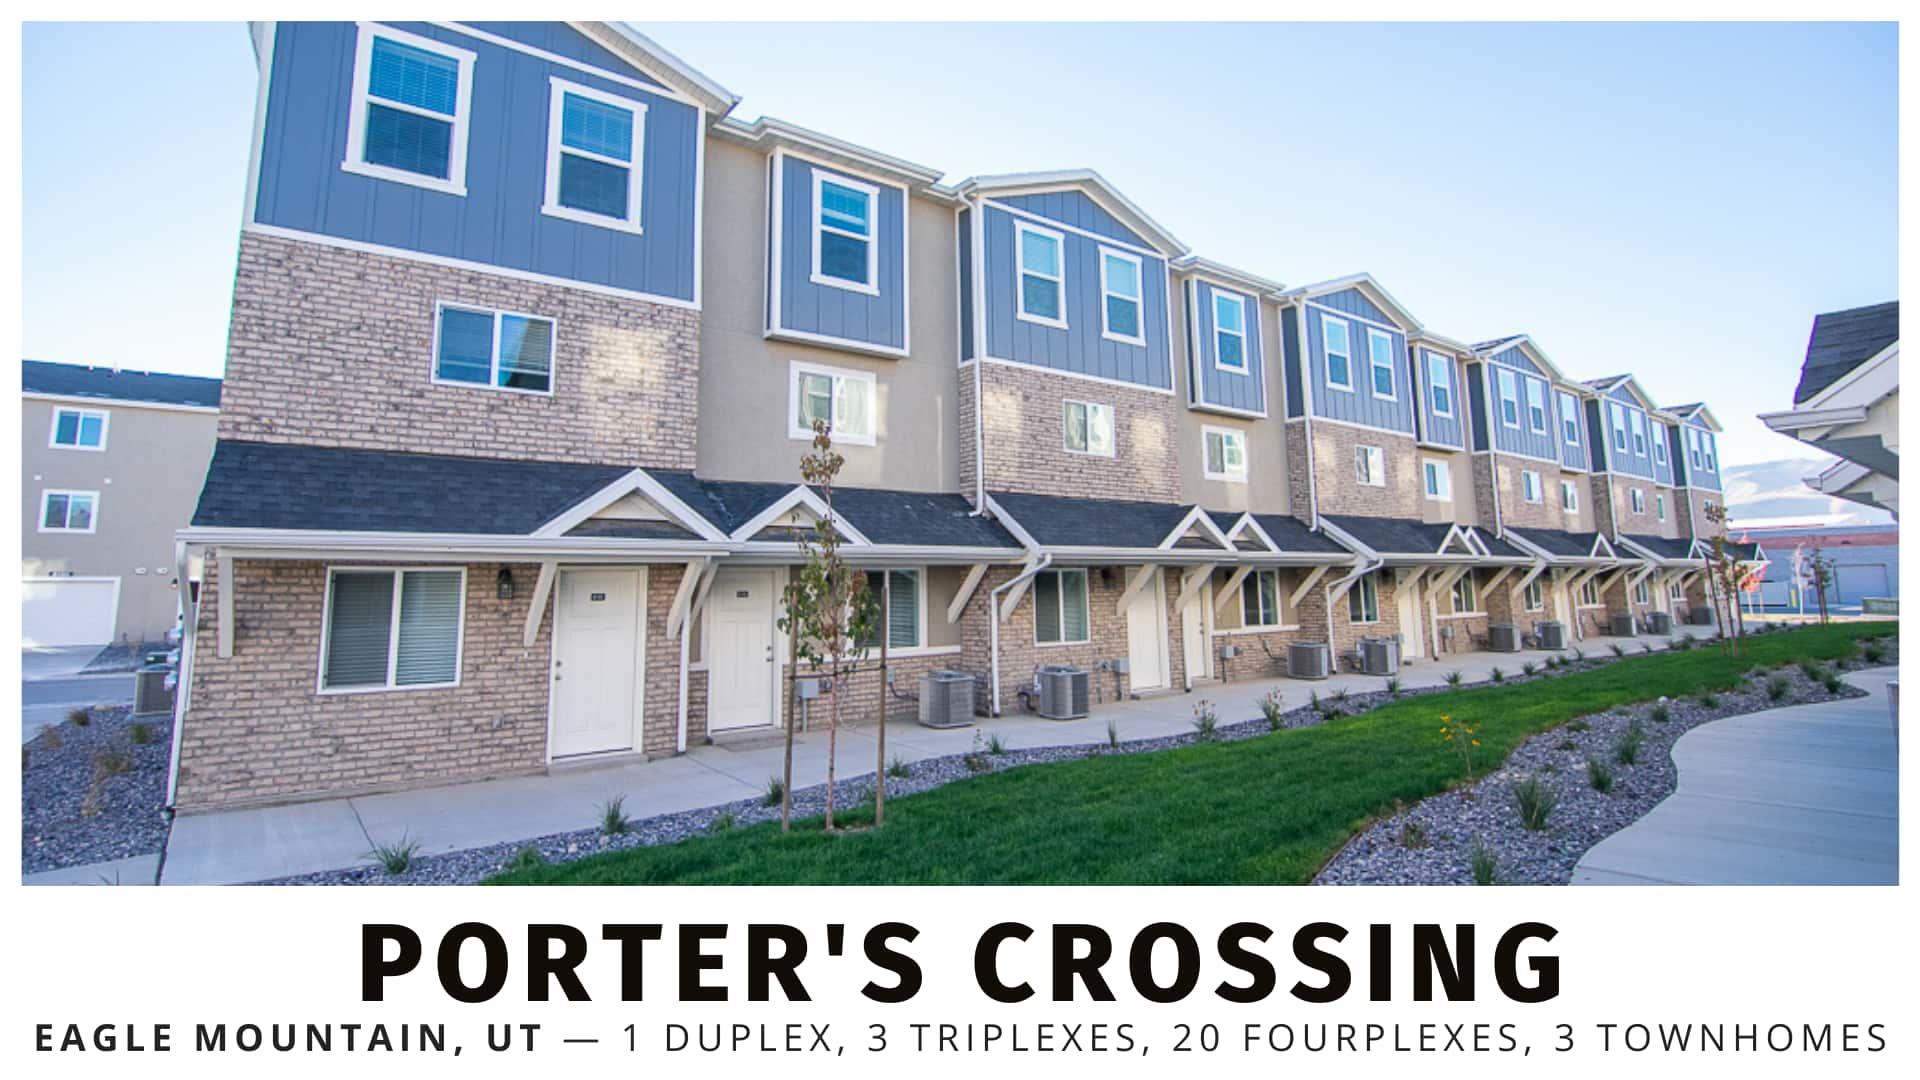 Porter's Crossing Duplex, Triplexes, and Fourplexes in Utah County